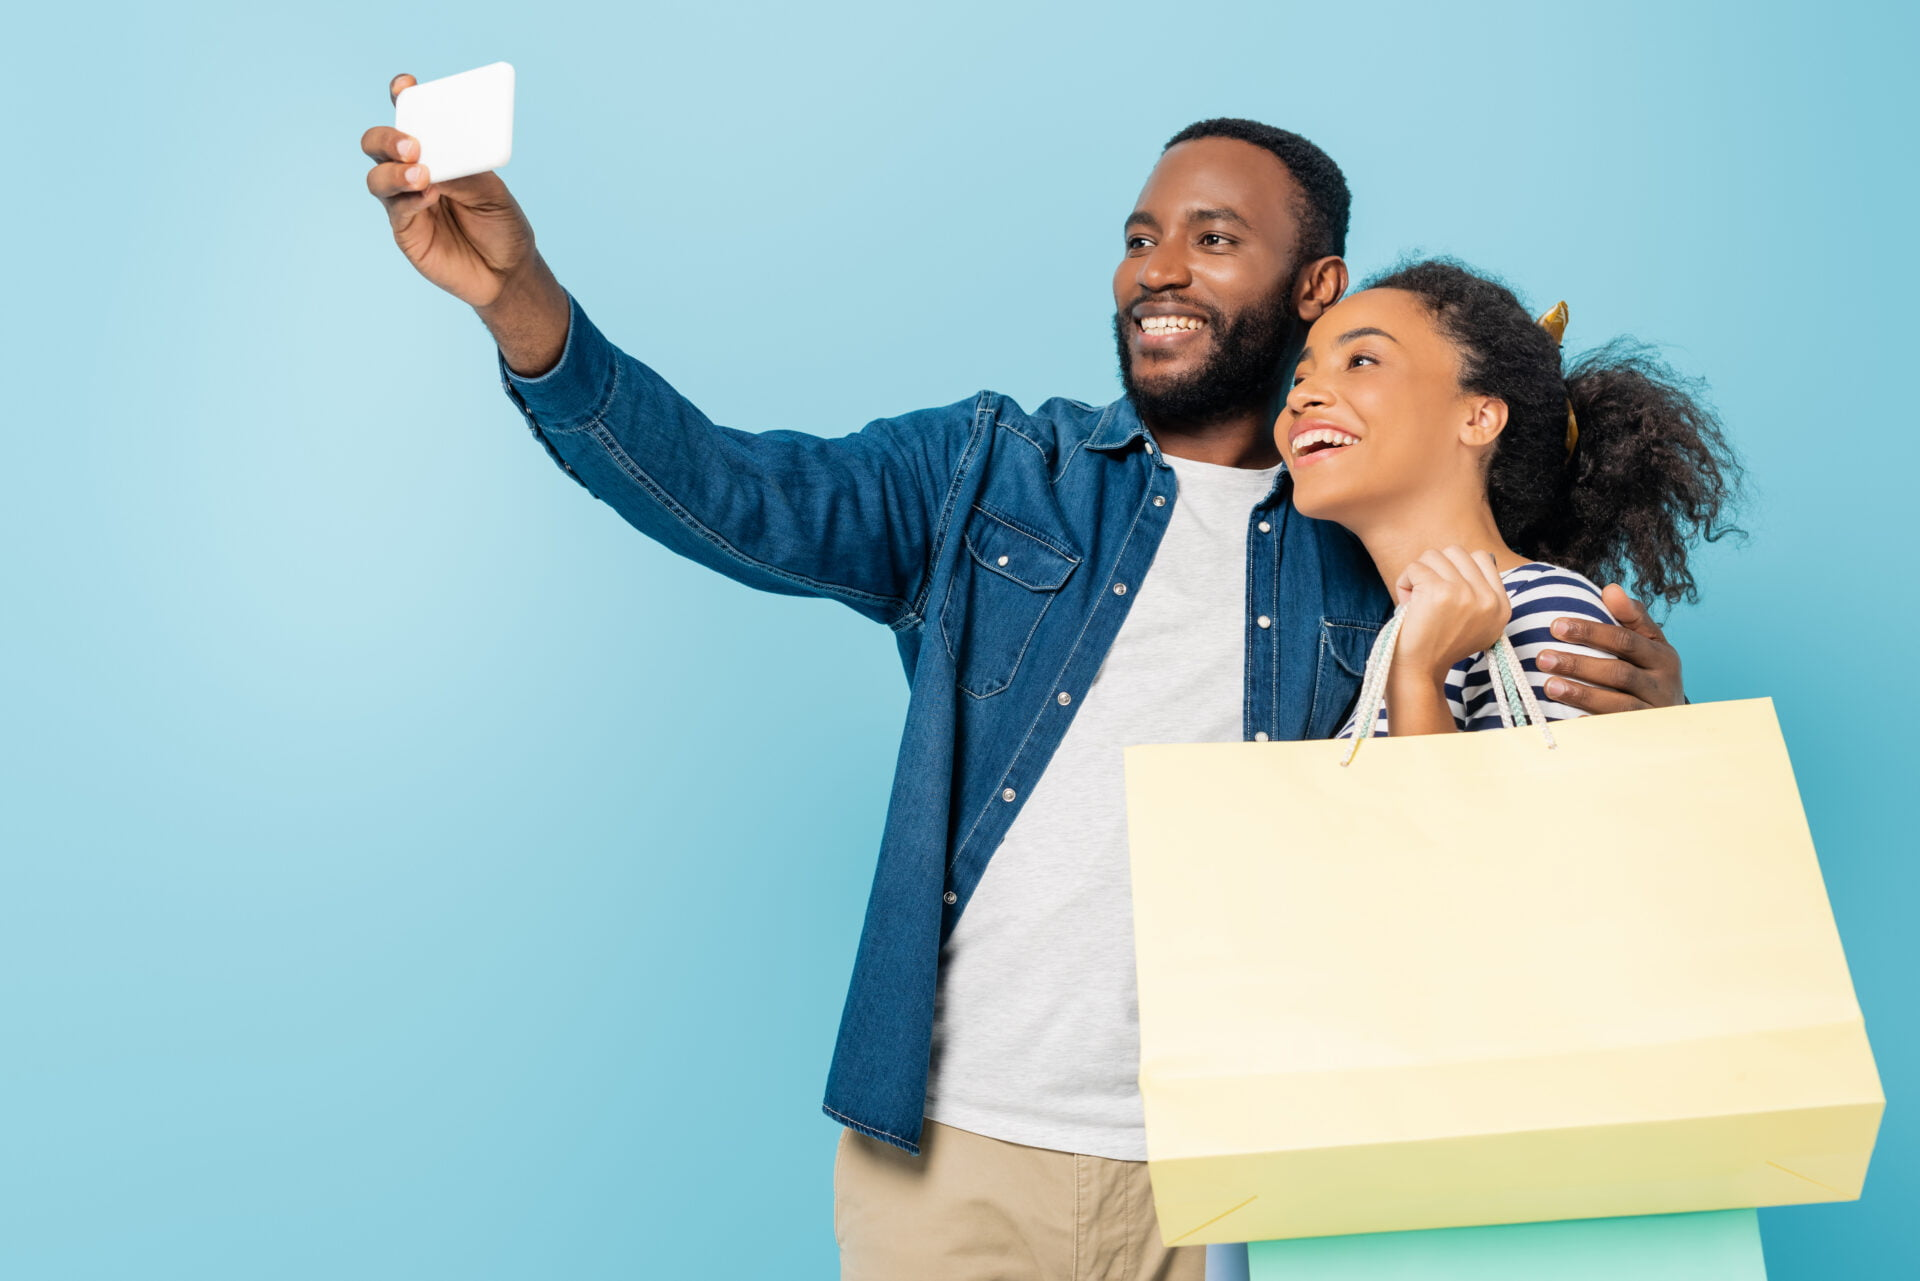 black man and woman shopping and taking selfie